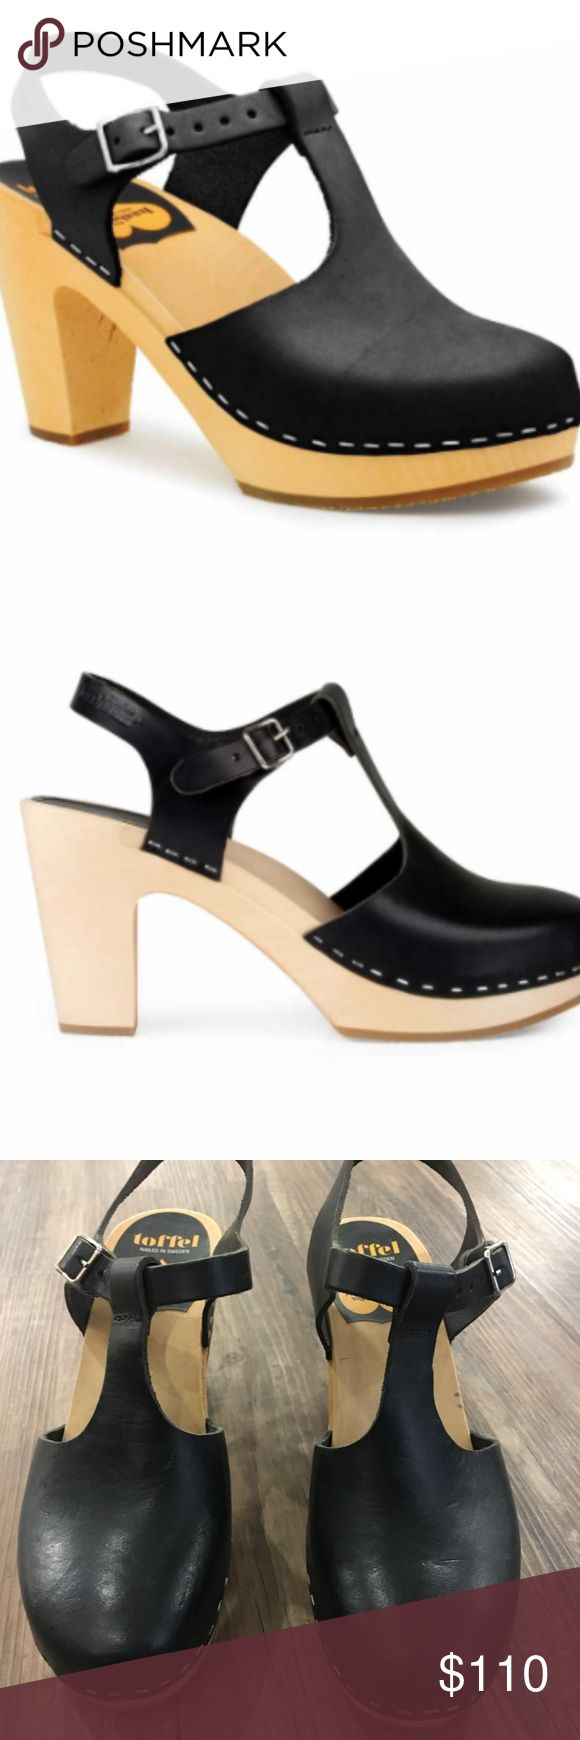 Swedish Hasbeens T-Strap Sky High Heel is 9.5 cm high (3.7 inches) Lime-tree wooden heel with rubber sole Italian natural grain leather, chrome free Swedish Hasbeens Shoes